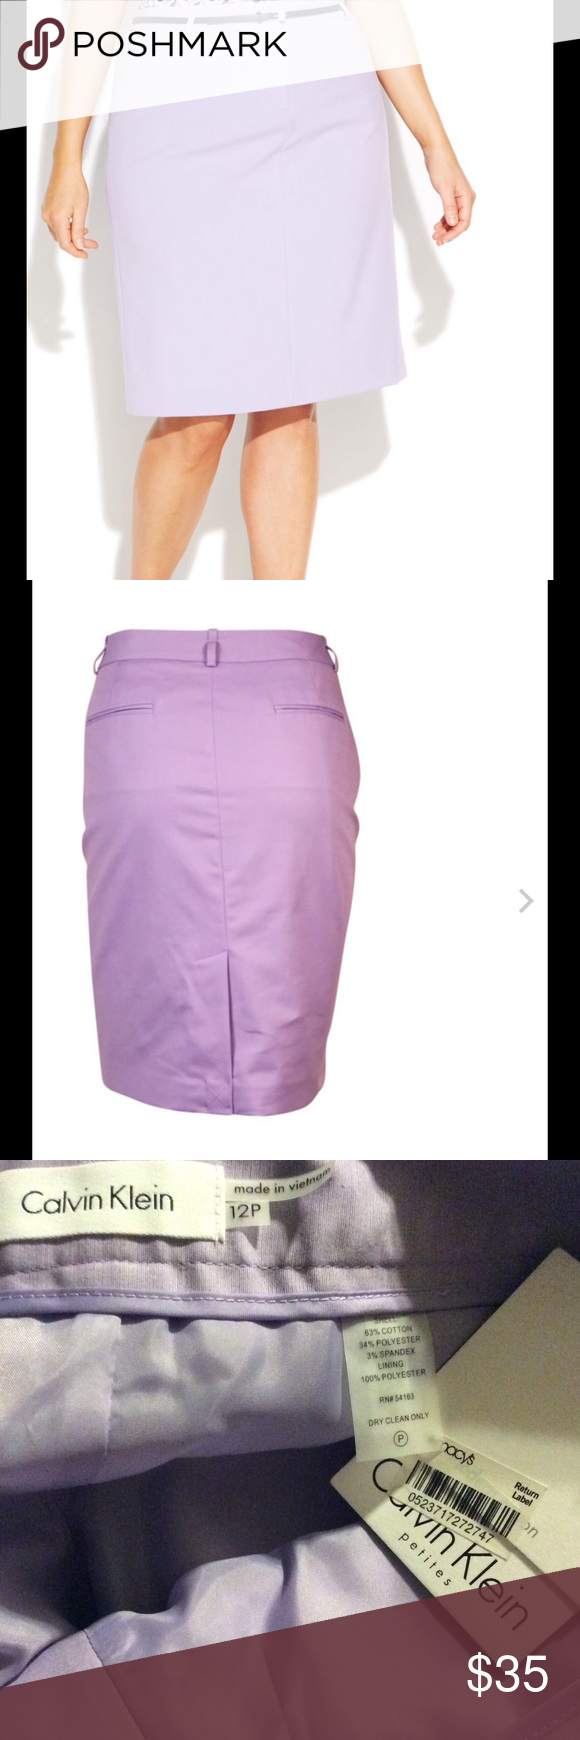 Calvin Klein NWT lined slim skirt. Sz 12P Calvin Klein slim skirt, lined. Flat pockets on back. No belt. New with tags. Size 12 petite. Calvin Klein Skirts